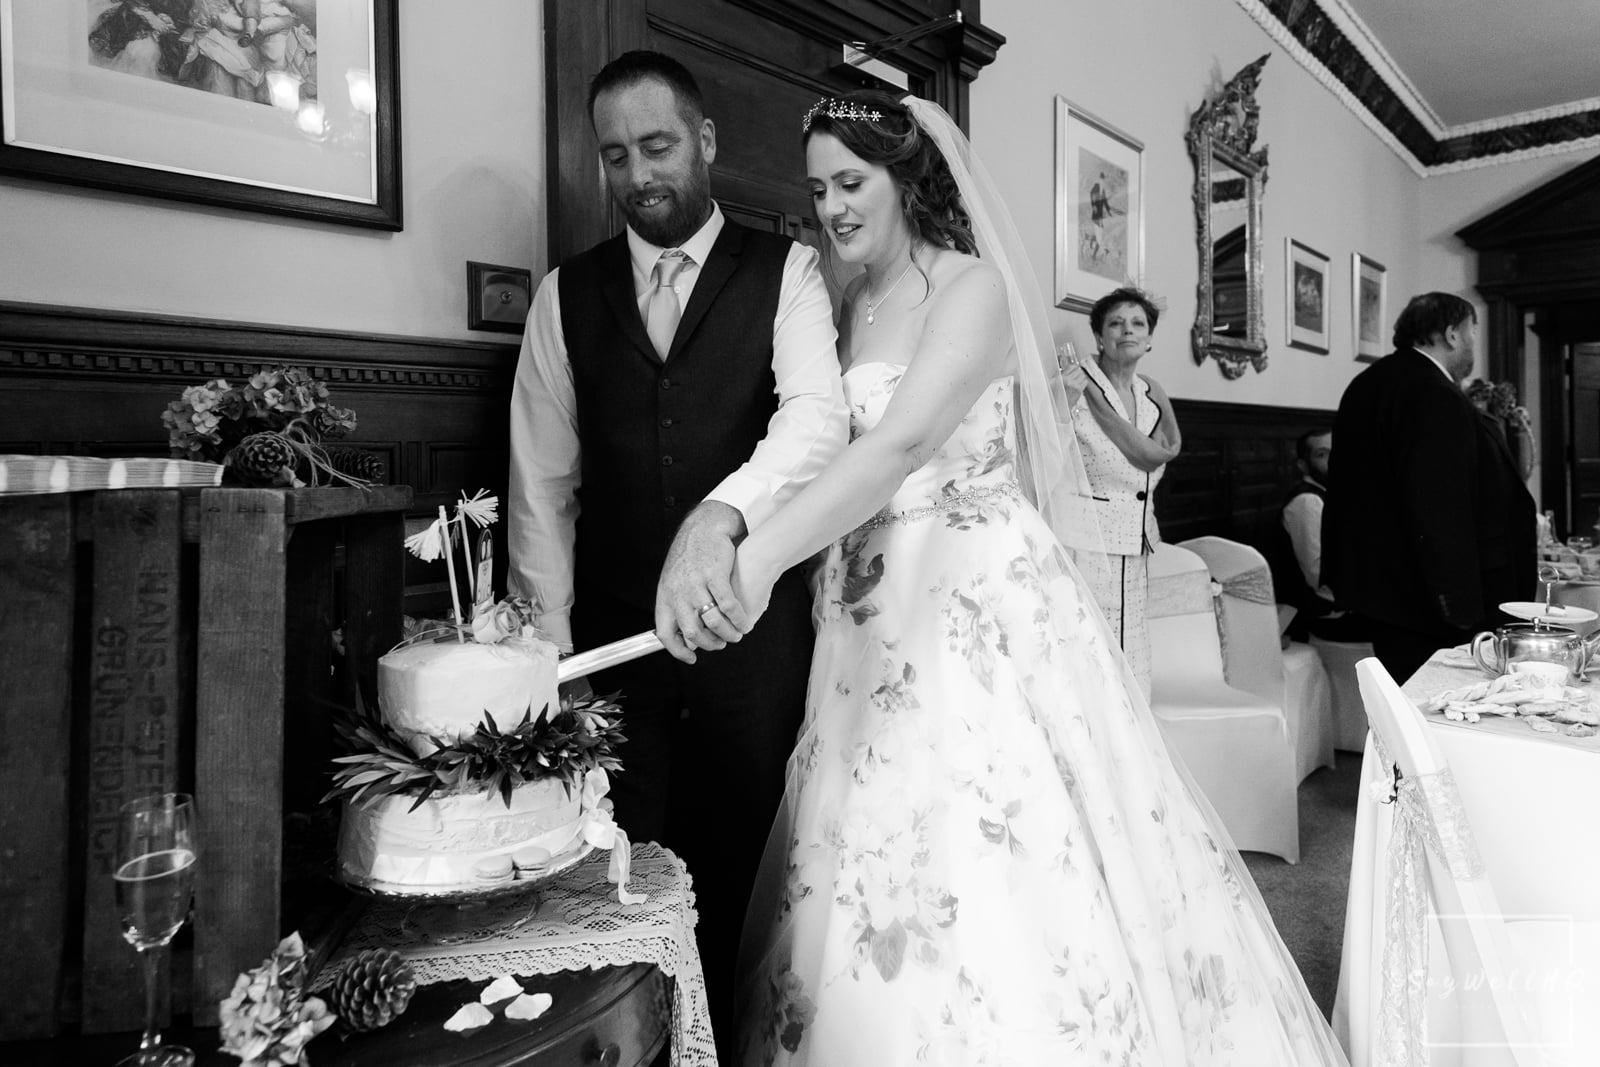 Lincoln Wedding Photography + Spilsby Church Wedding Photographer + bride and groom cut their wedding cake at Skendleby Hall